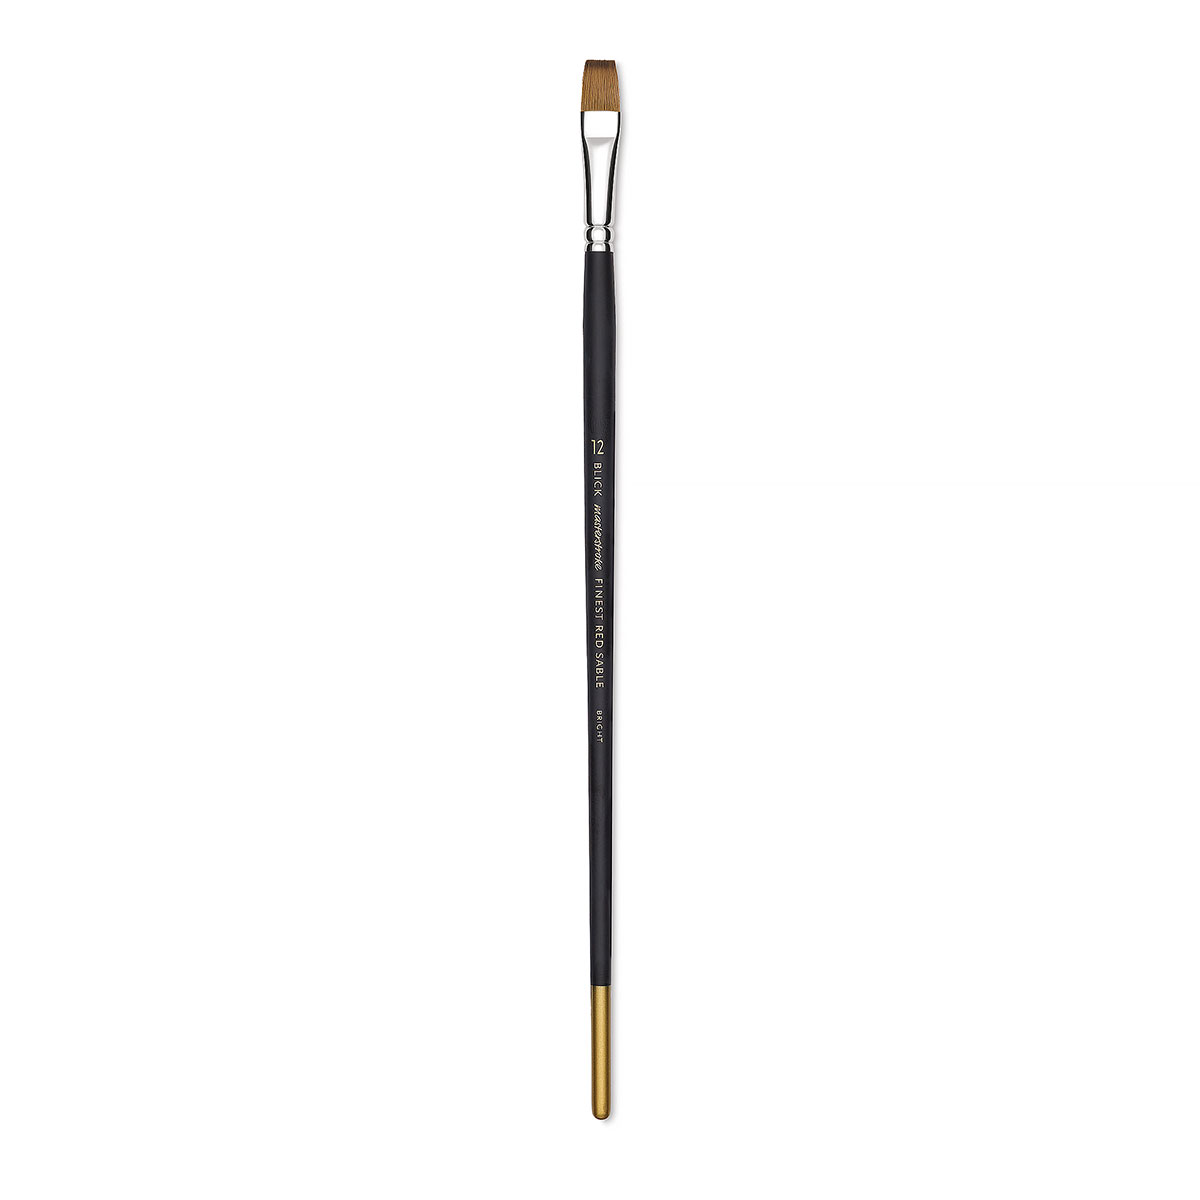 Blick Masterstroke Finest Red Sable Brush - Bright, Size 12, Long Handle